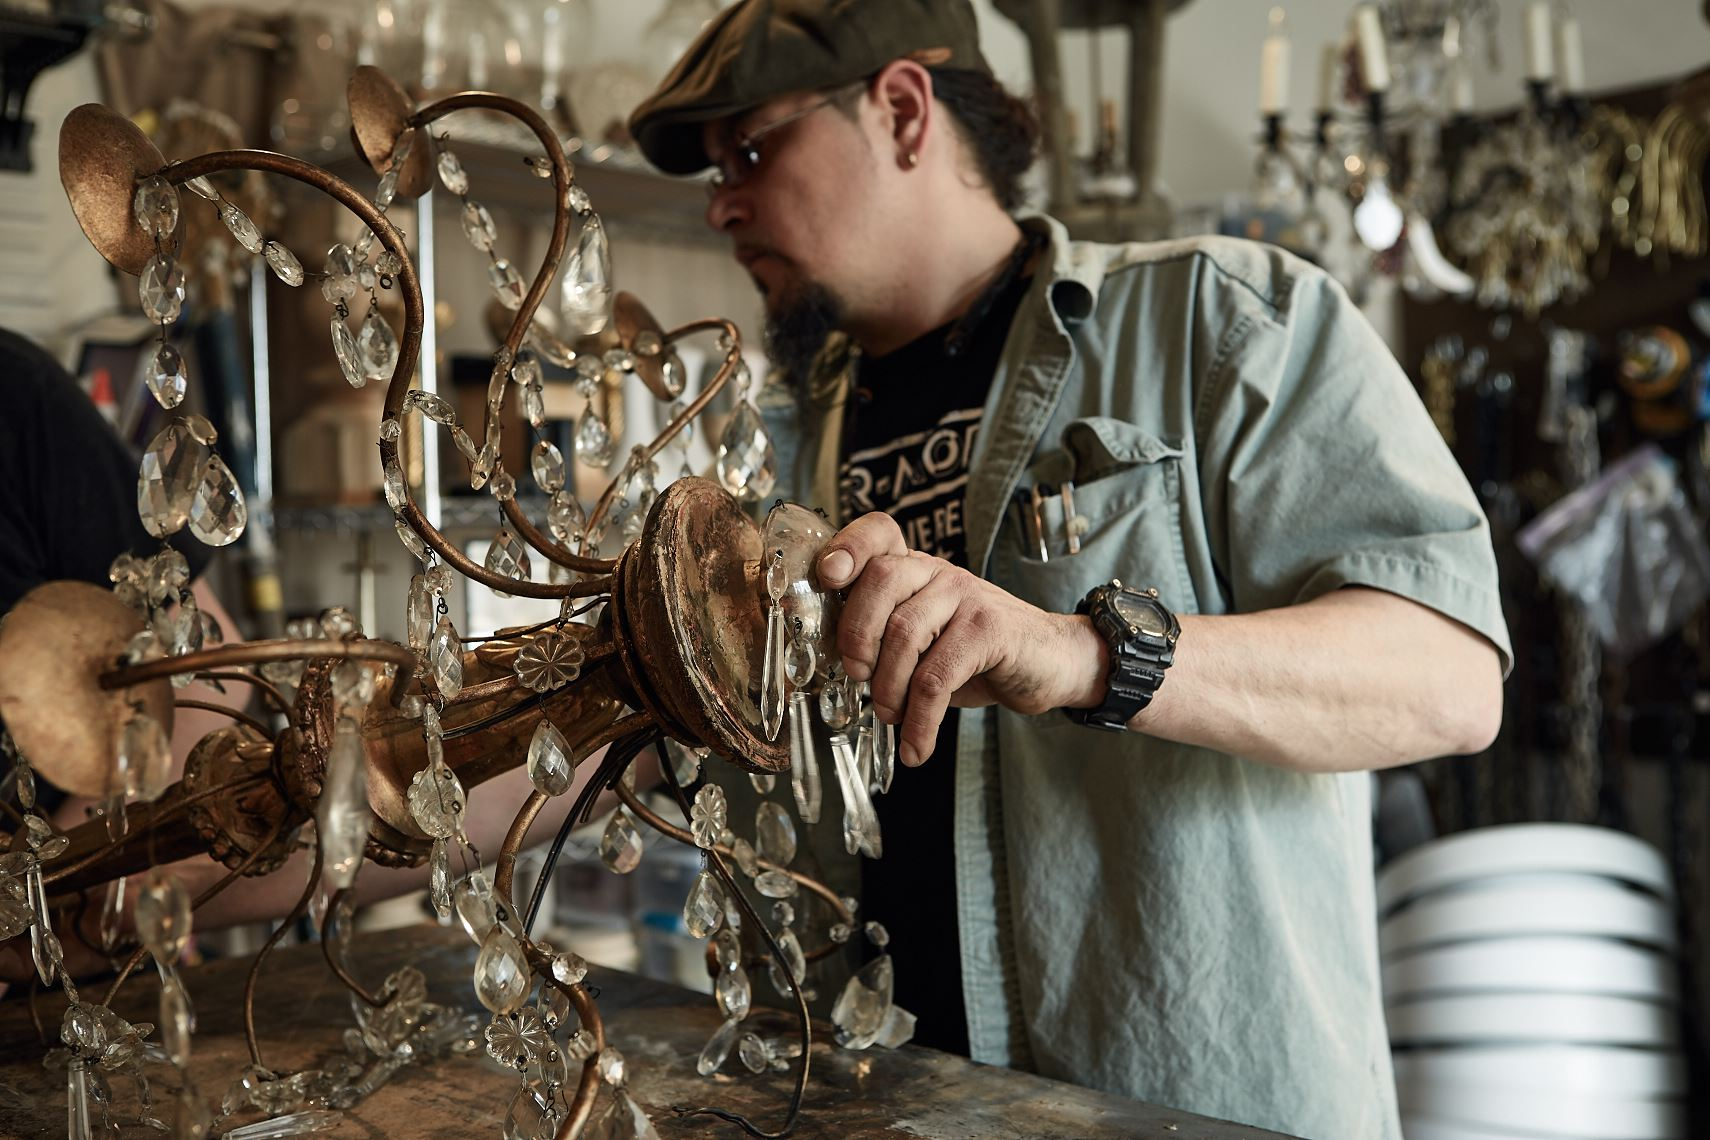 Michael Morales repairs antique chandelier, Atlanta, Nick Burchell photography